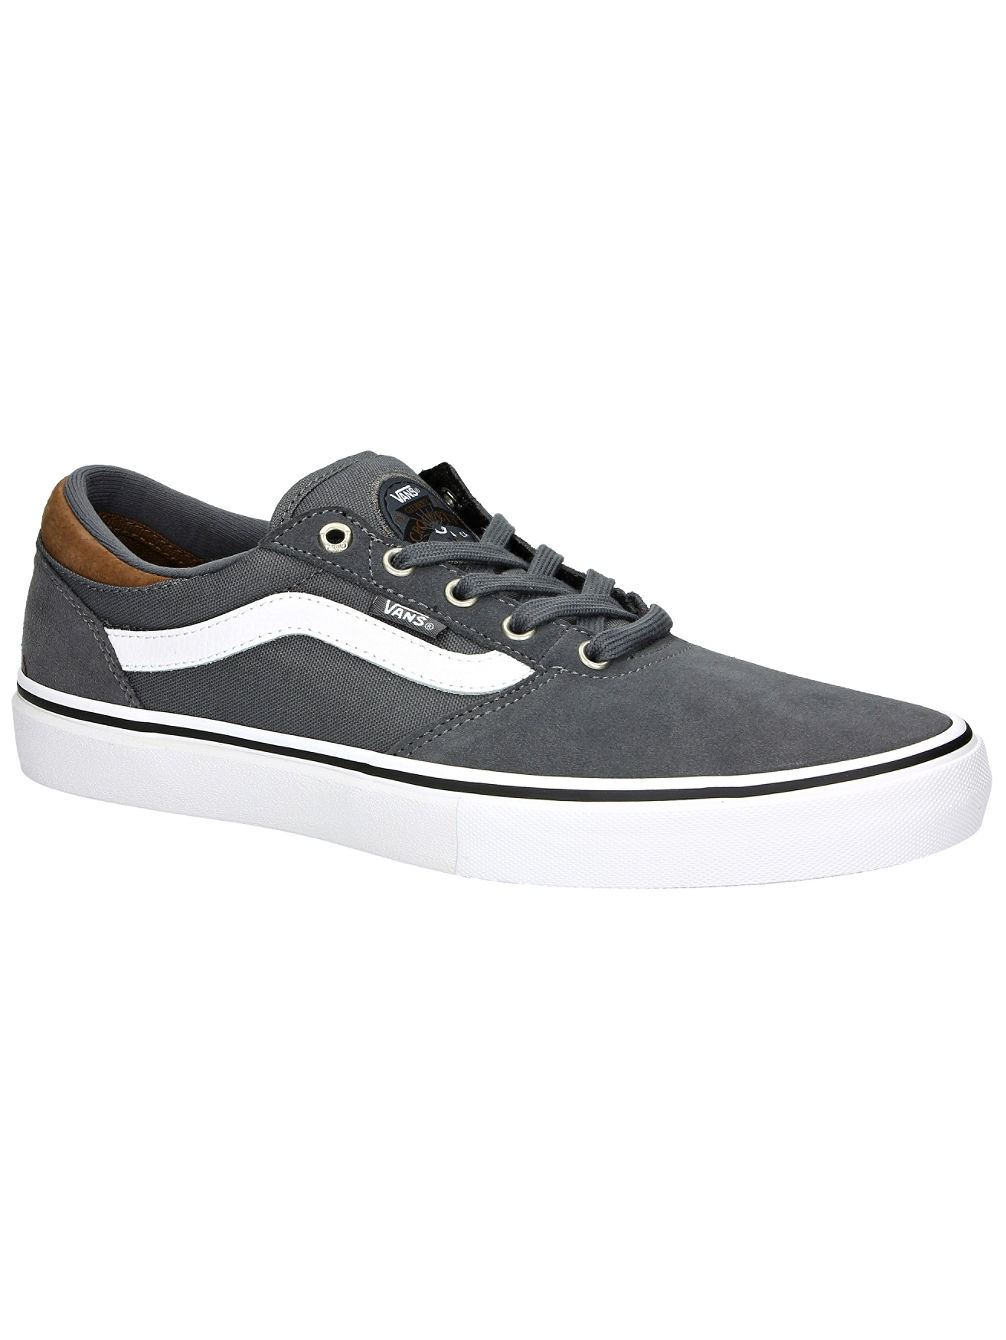 a03a0e4a76 Buy Vans Gilbert Crockett Pro Skate Shoes online at Blue Tomato